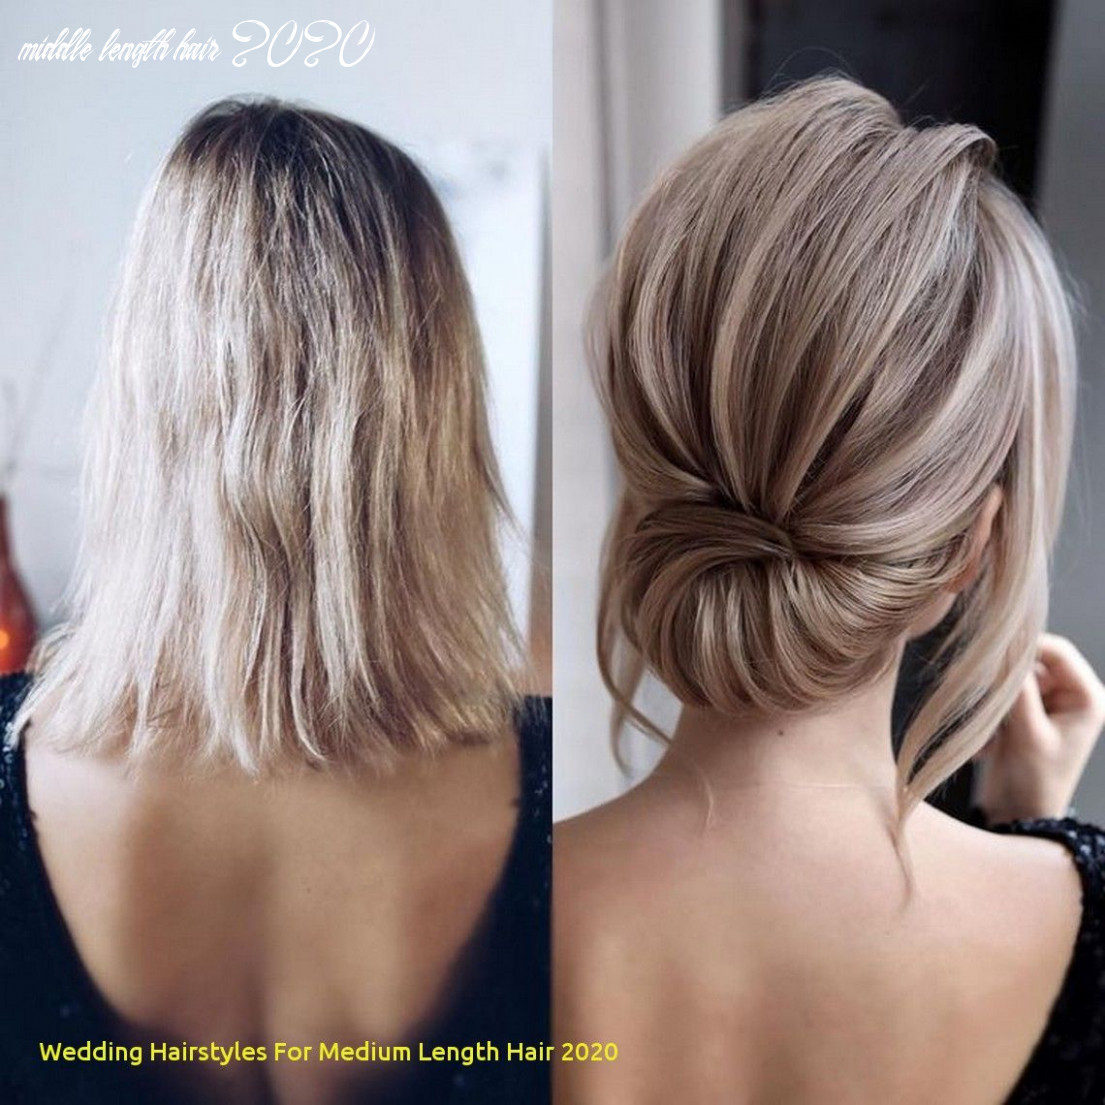 Wedding hairstyles for medium length hair 11 11 medium length